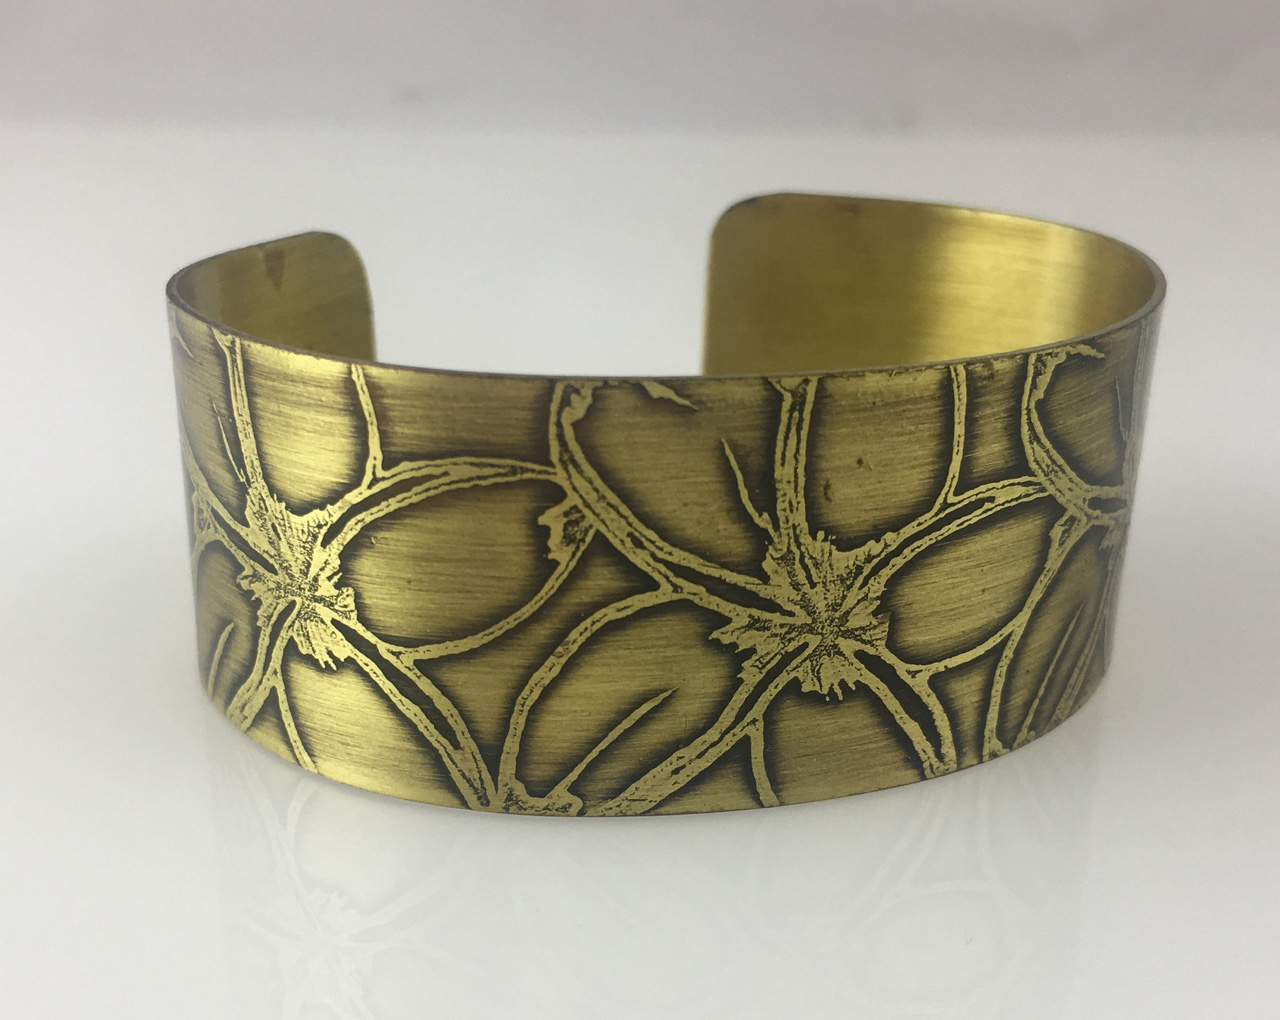 Brass Bracelet with Etched Plumeria Flowers by JoAnna Hernandez